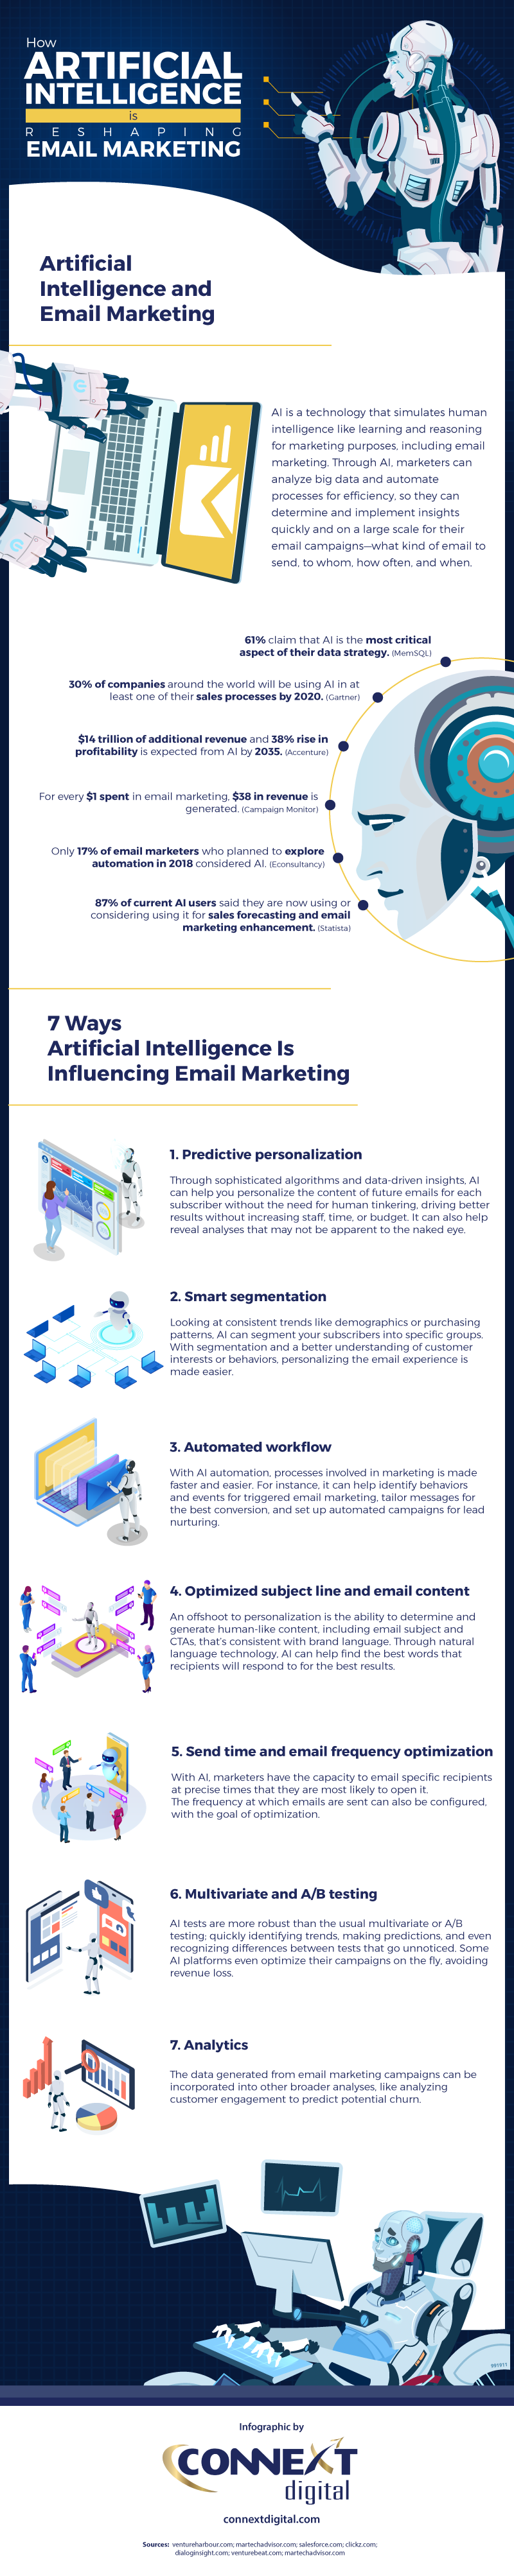 How-Artificial-Intelligence-is-Reshaping-Email-Marketing